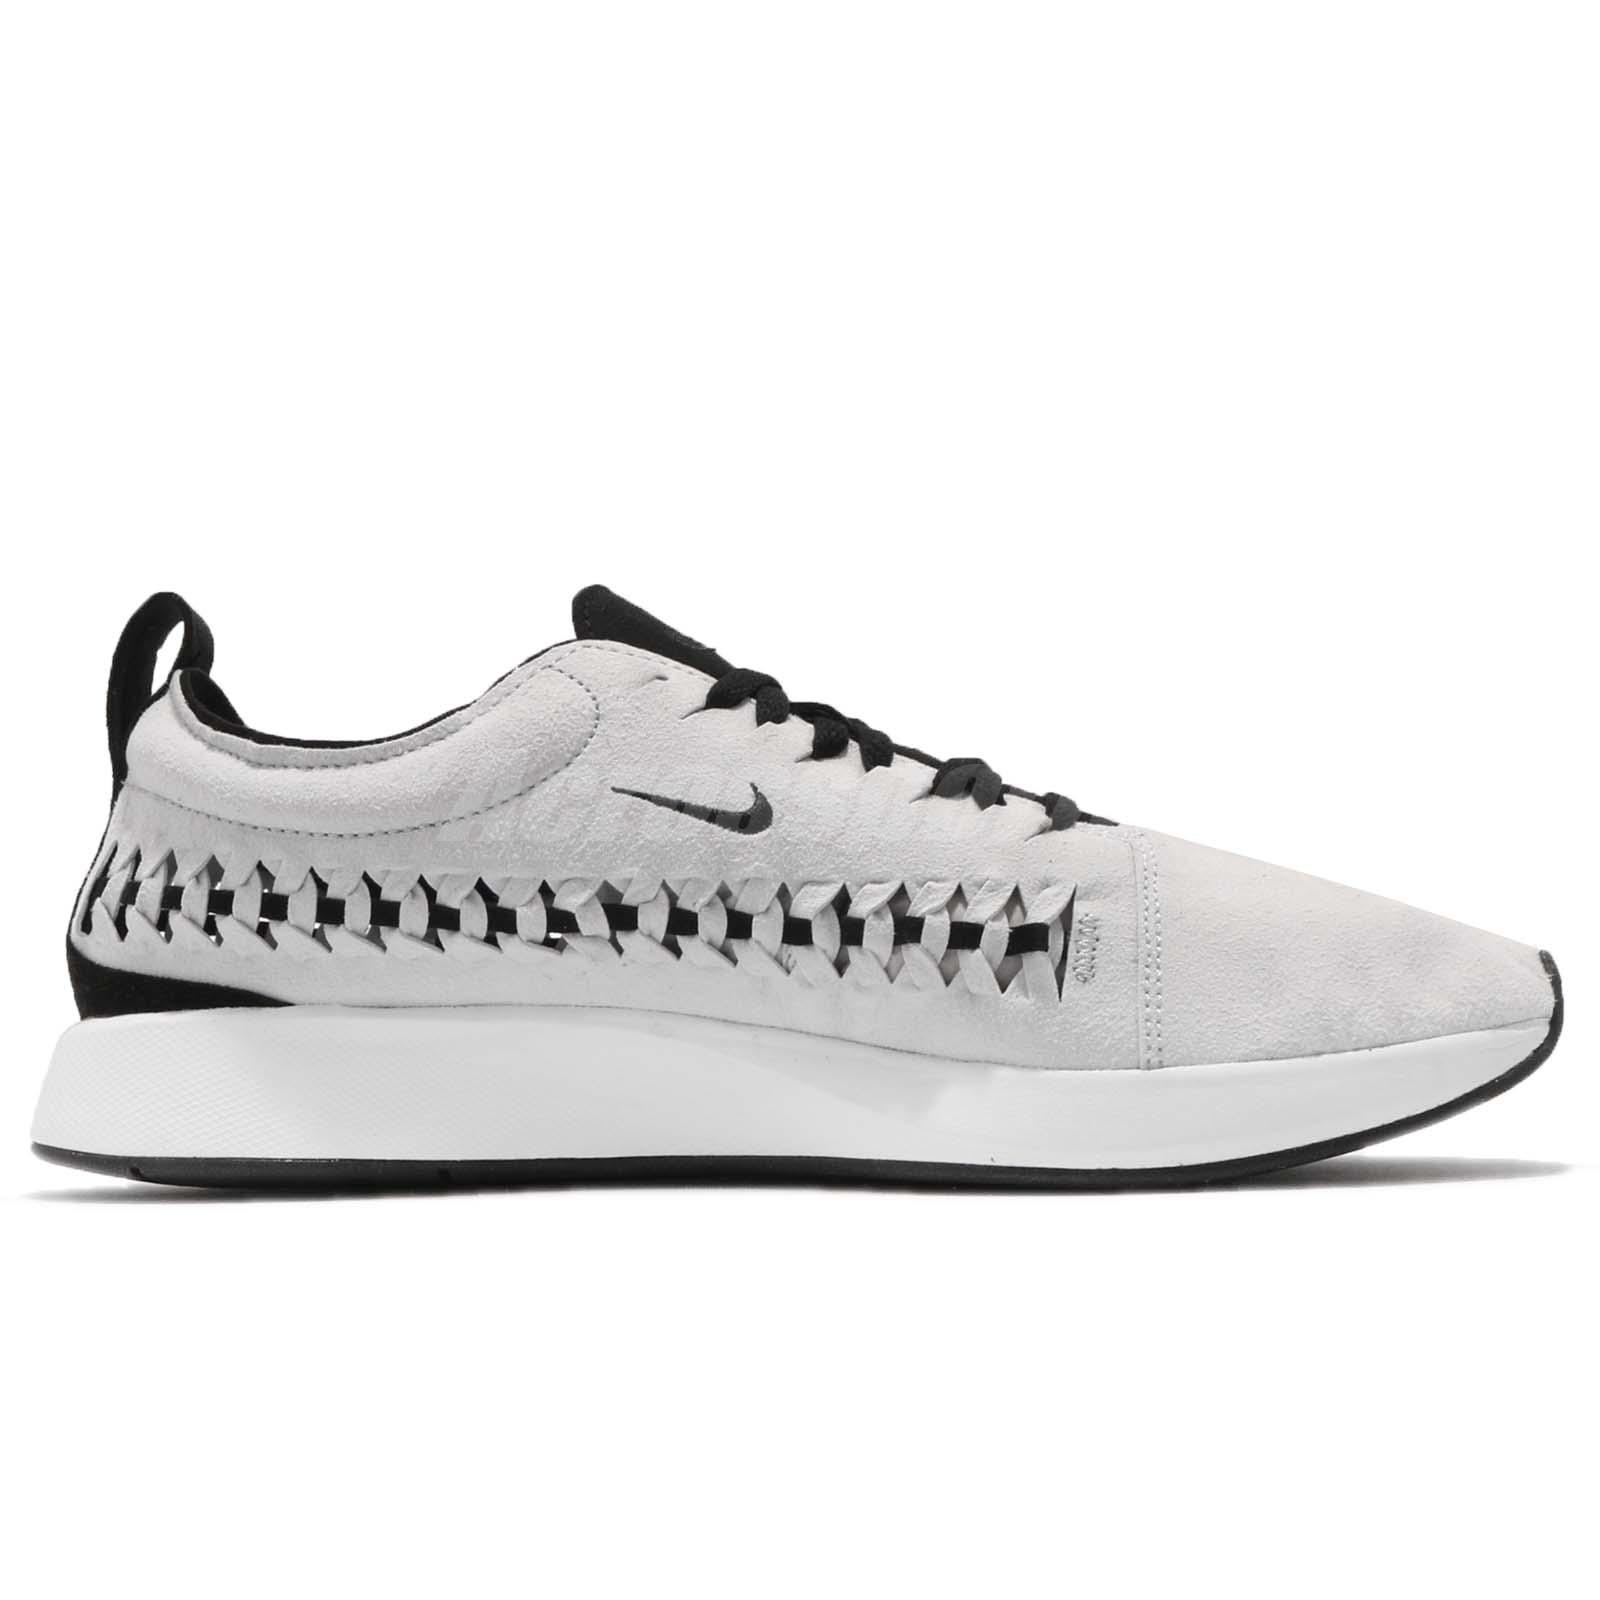 860c3cfcc7eb4 Details about Nike Dualtone Racer Woven Grey Black NSW Lifestyle Mens  Running Shoes AO0678-001